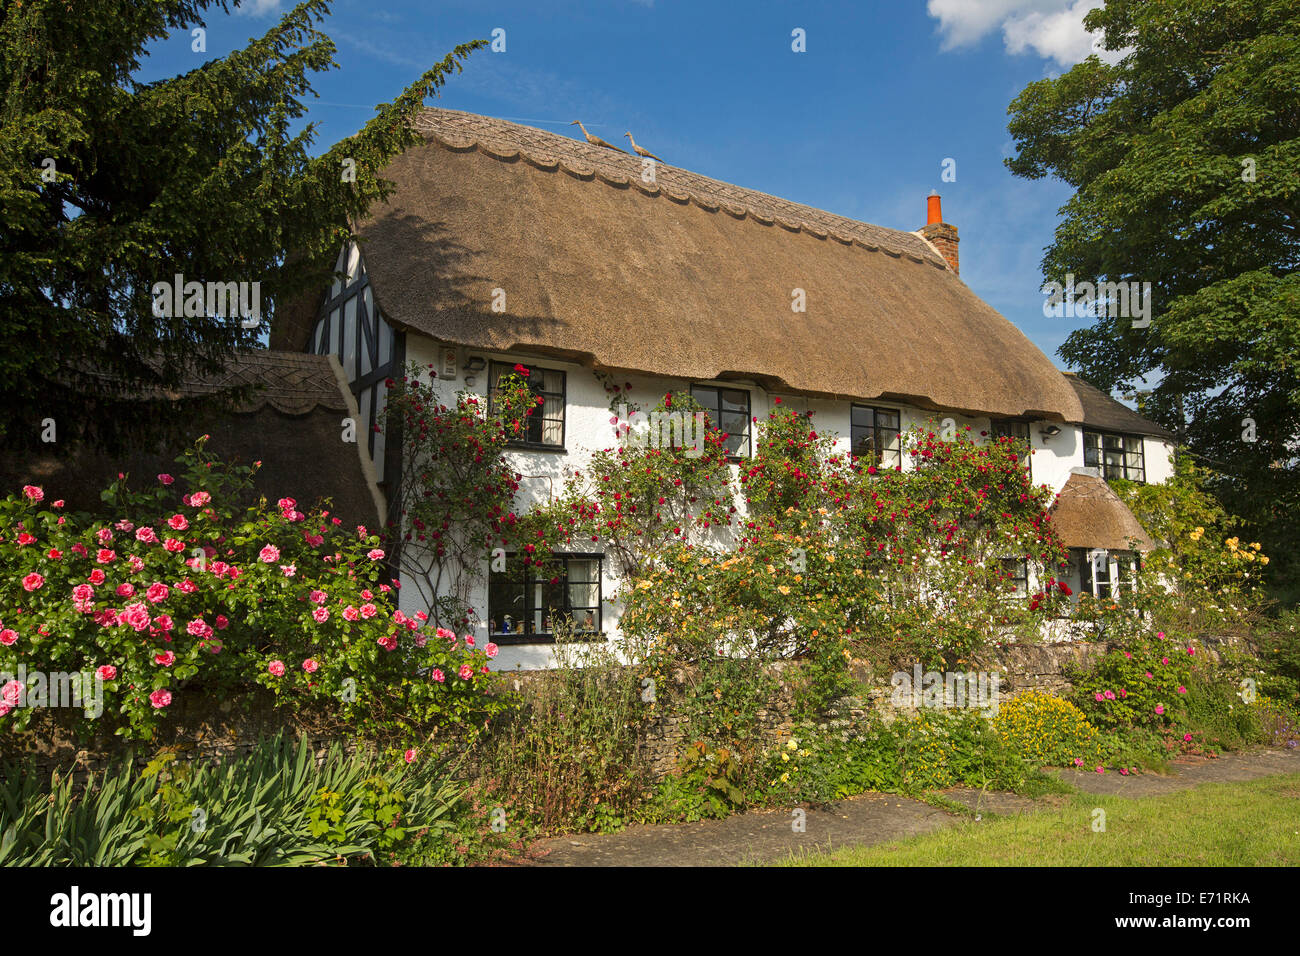 Picturesque English cottage with thatched roof, white walls covered with red and yellow climbing roses, blue sky, - Stock Image